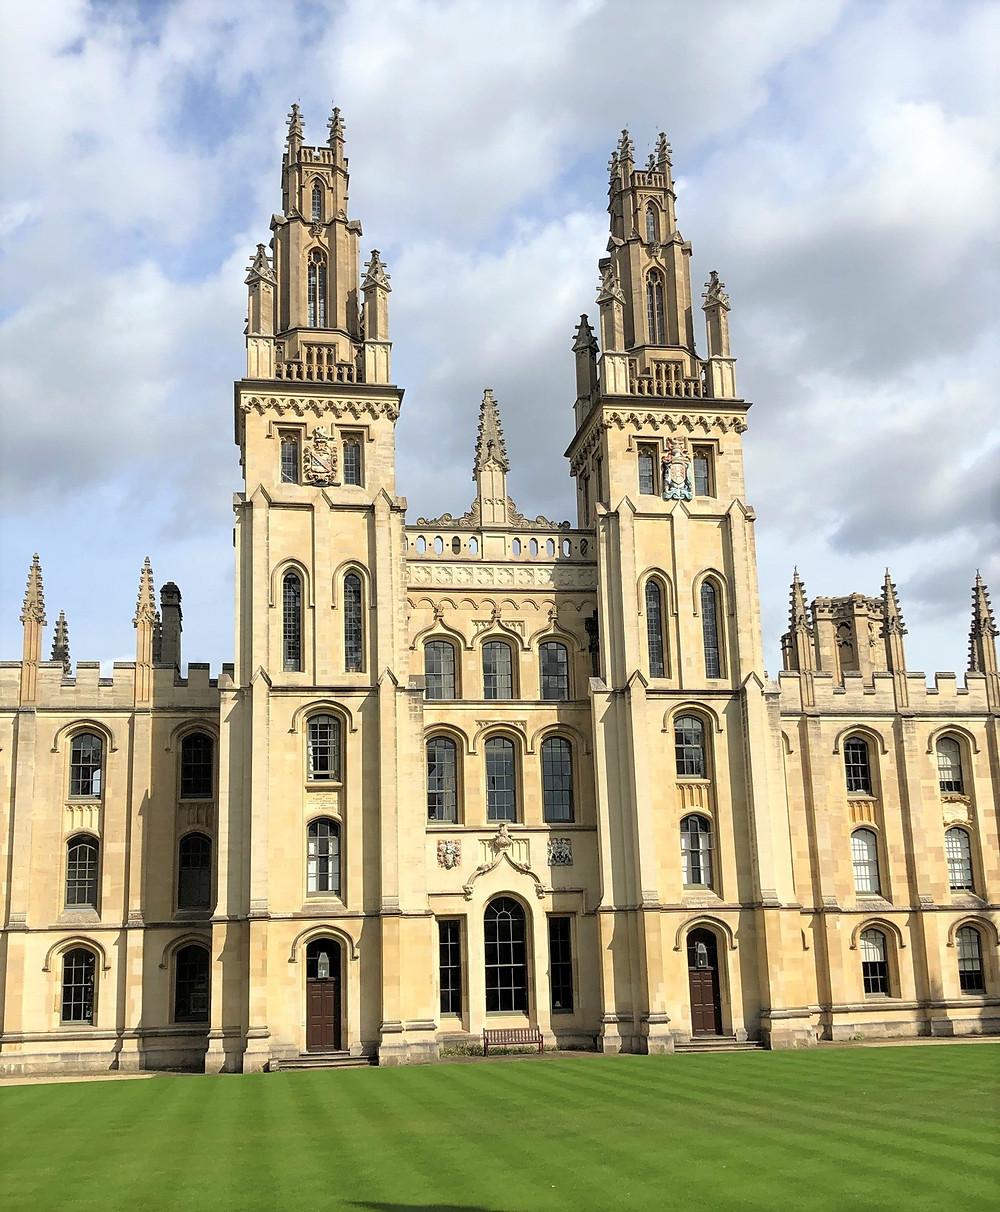 The four-story twin gate towers of Hawksmoor's Quadrangle at All Souls College in Oxford, England